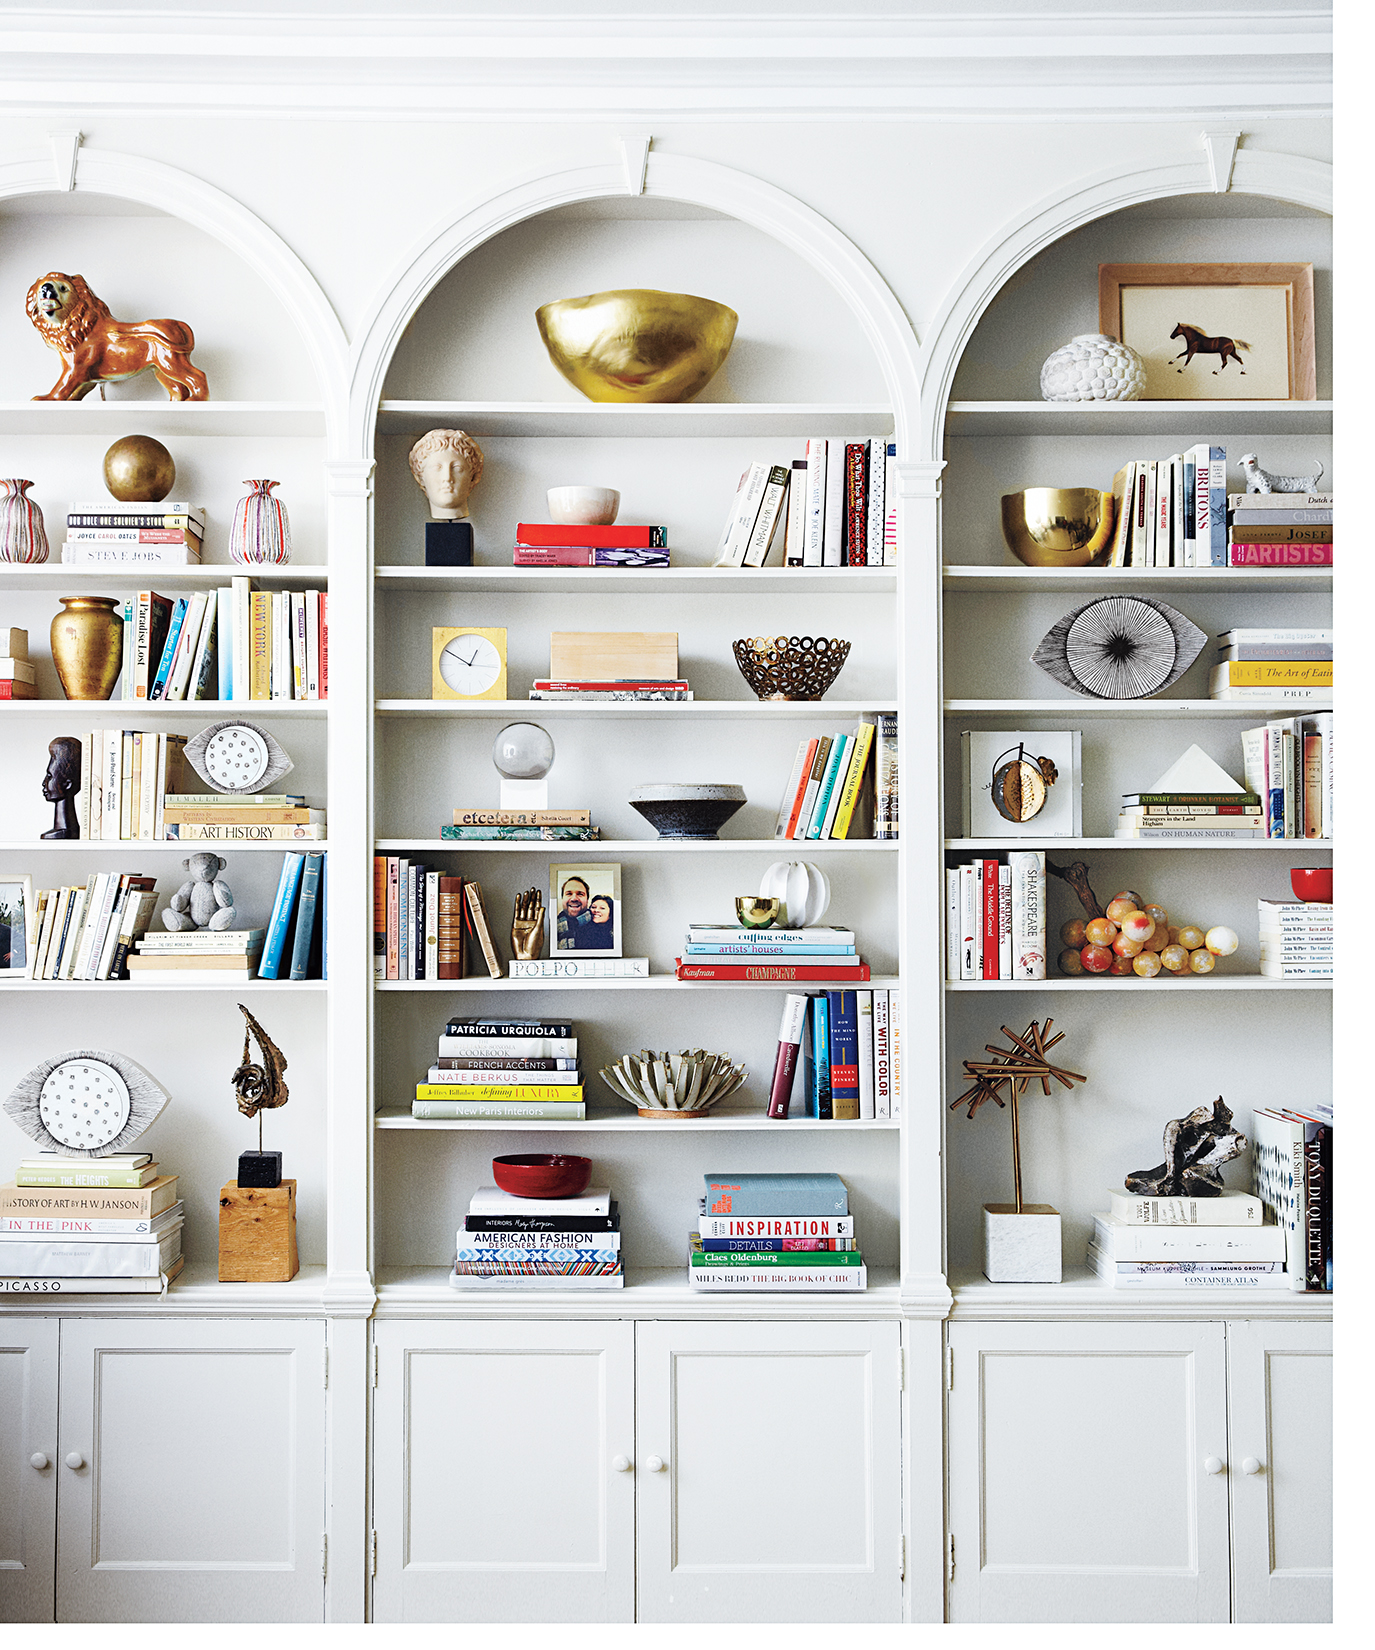 White bookcase with books and assorted objects on the shelves